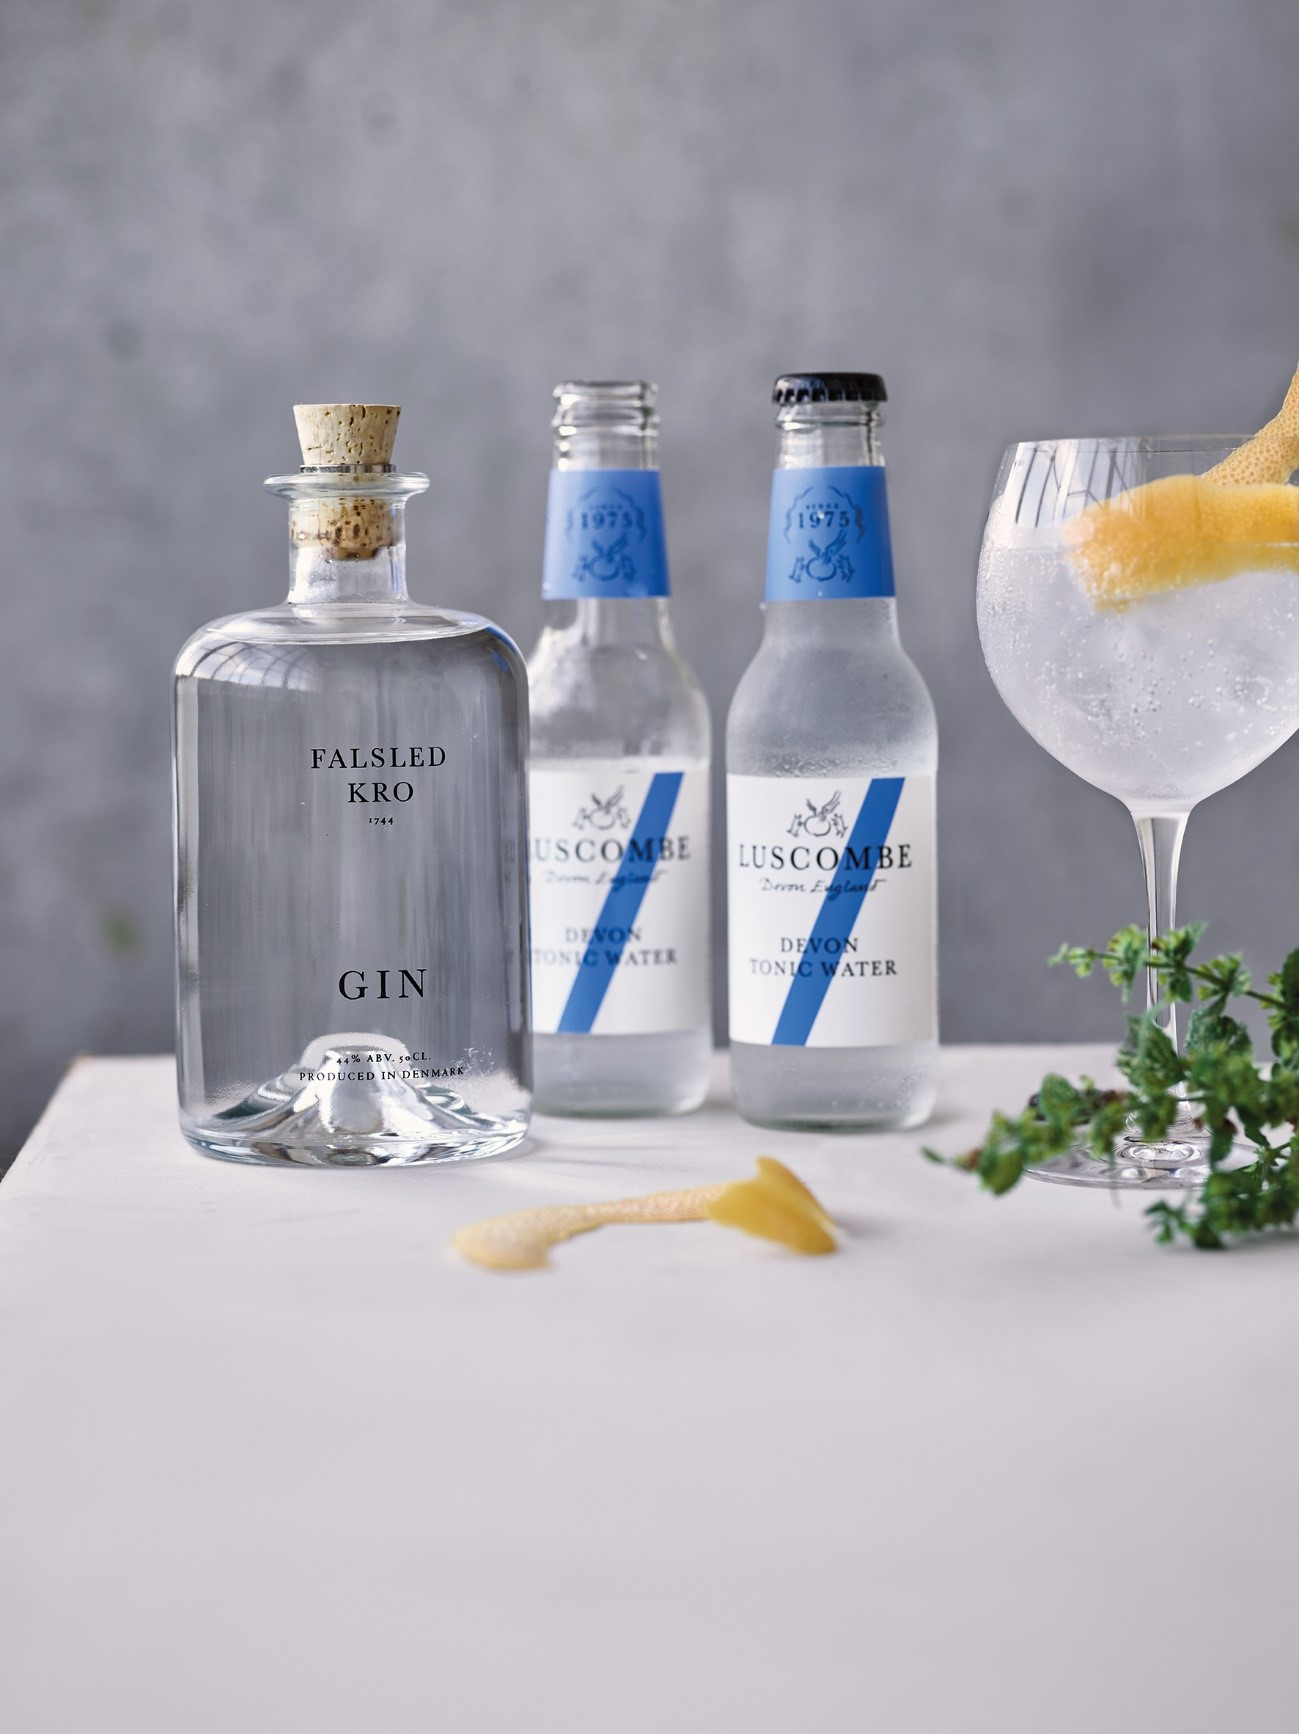 Falsled kro gin med to Luscombe tonic vand